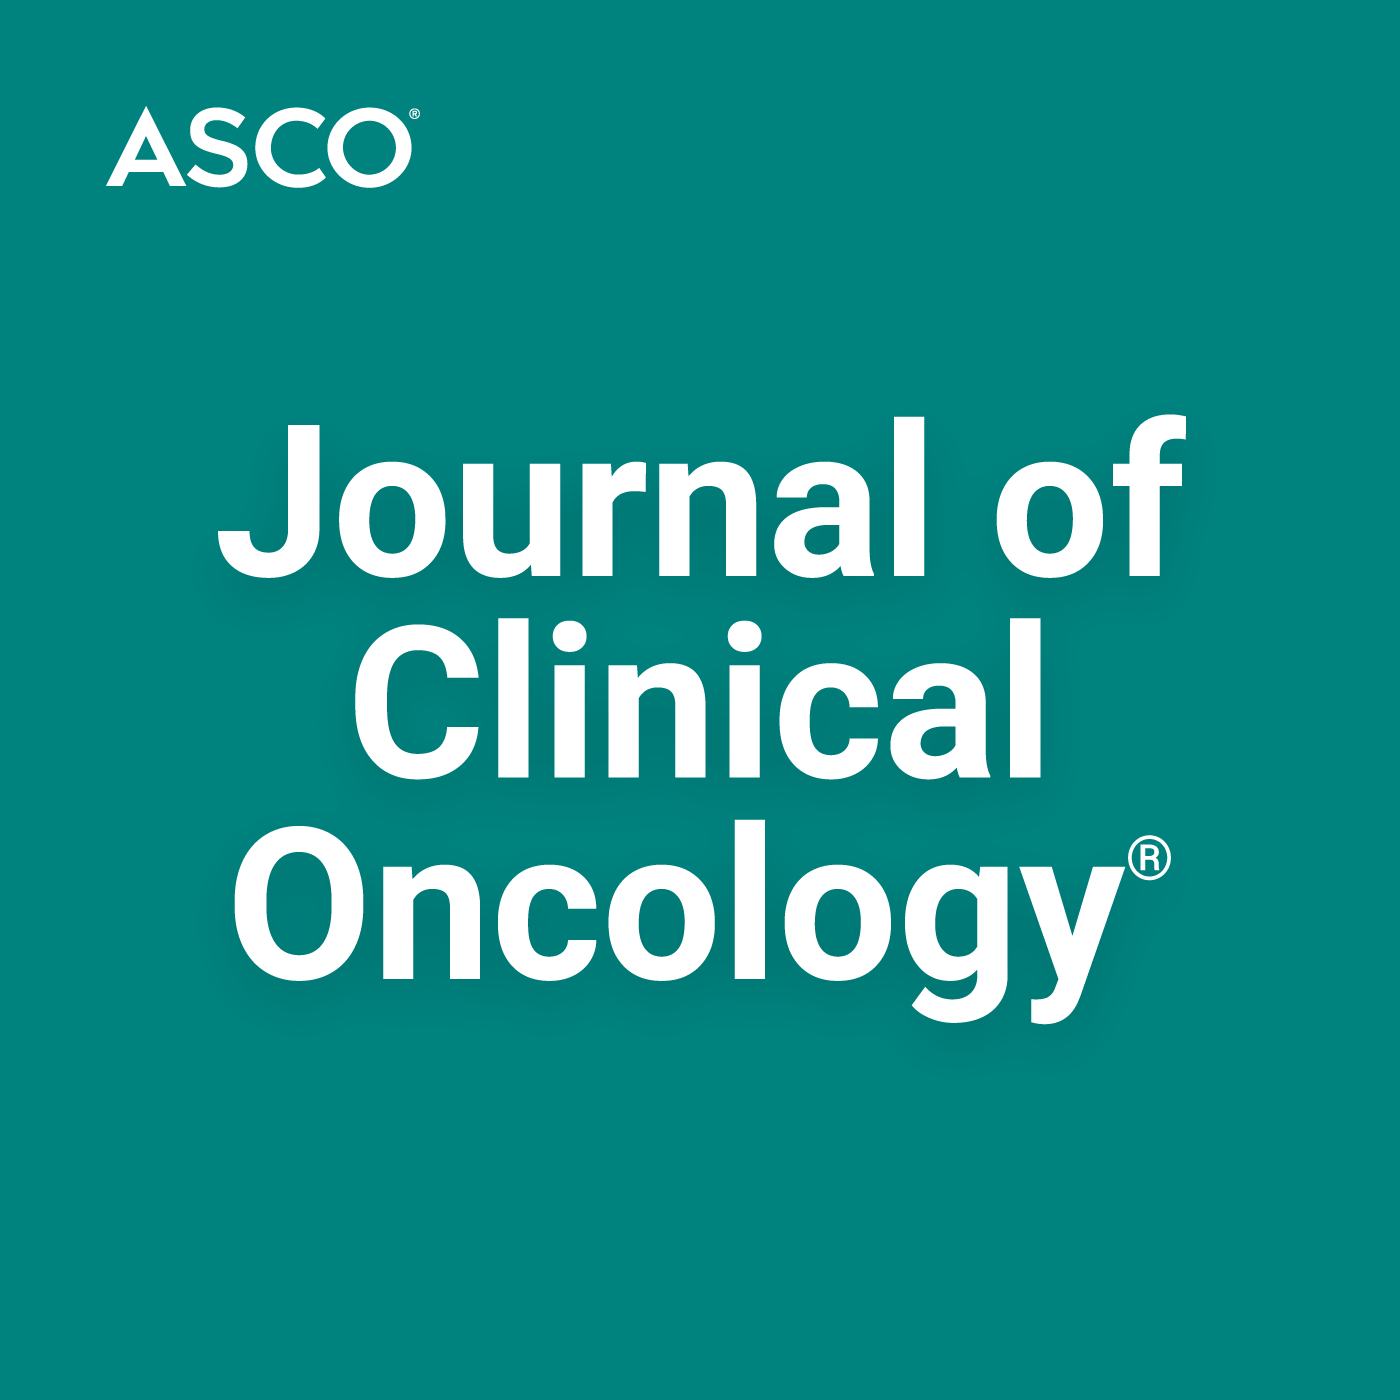 How Can We Expand Eligibility Criteria for Diffuse Large B-Cell Lymphoma Clinical Trials to Serve More Patients?